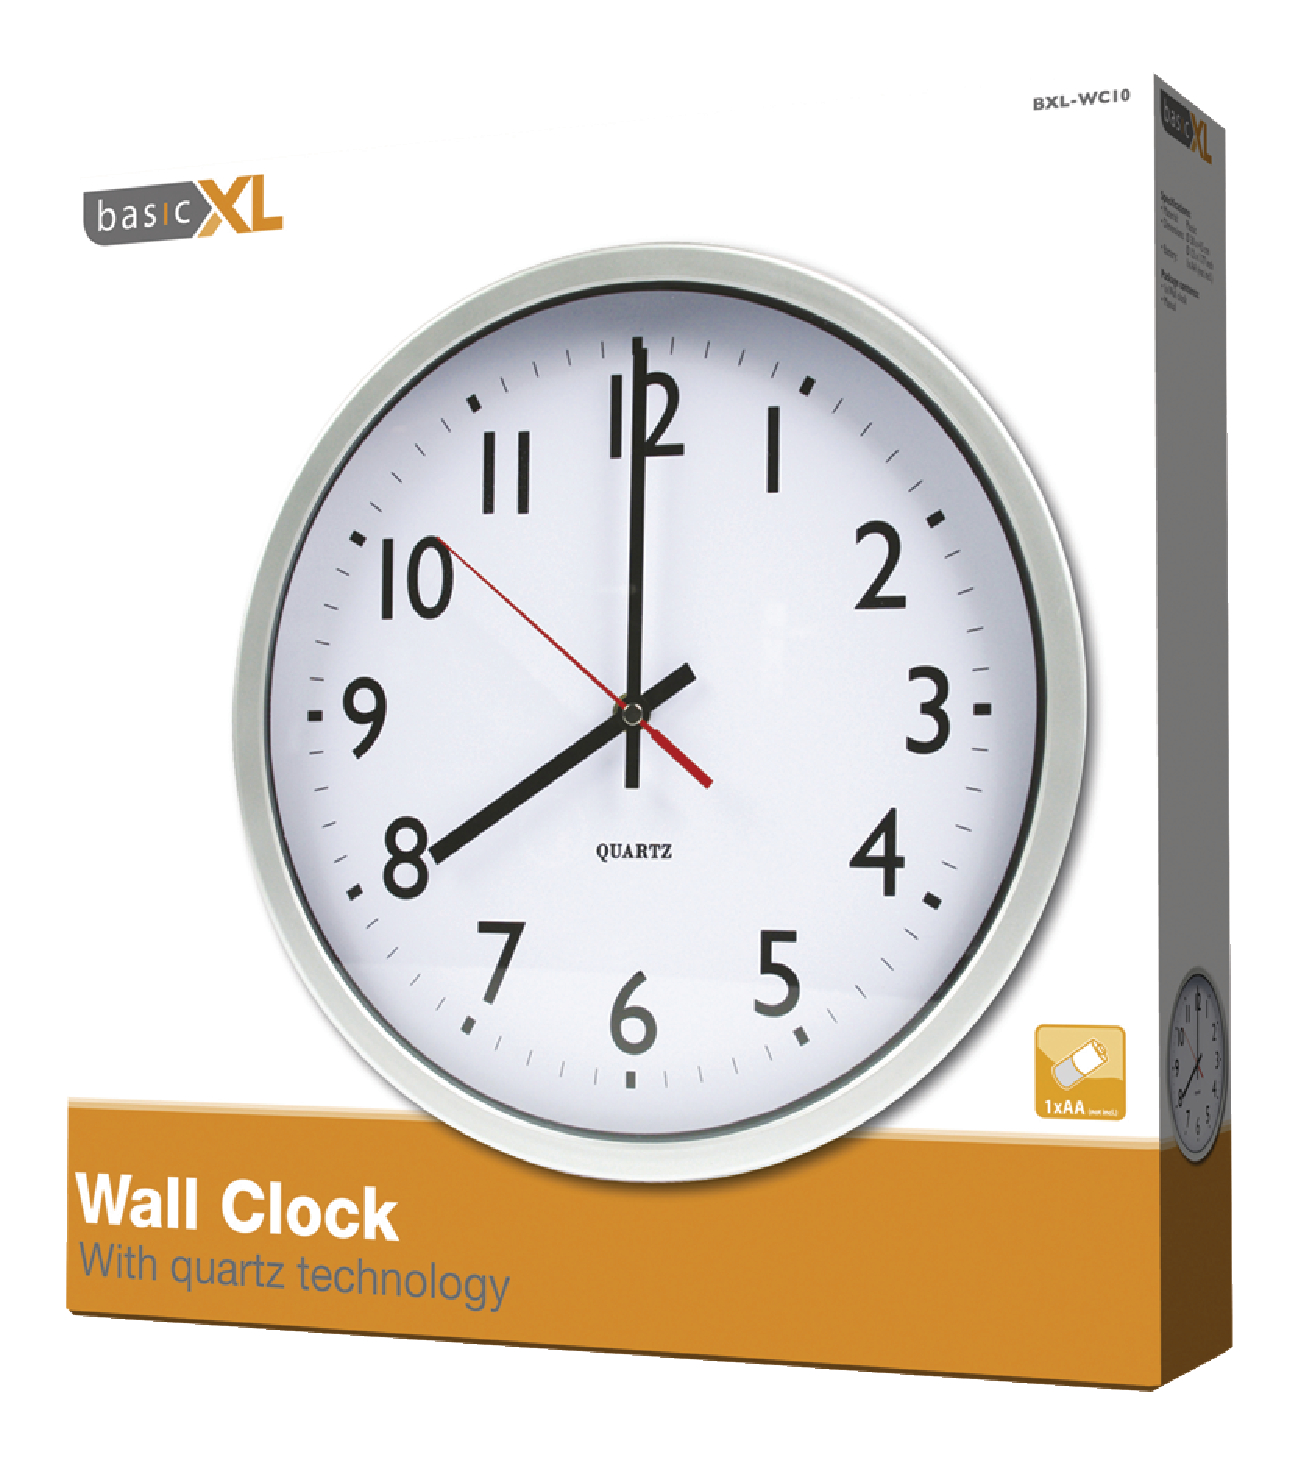 Inexpensive Wall Clock Bxl Wc10 Basicxl Wall Clock 30 Cm Analogue White